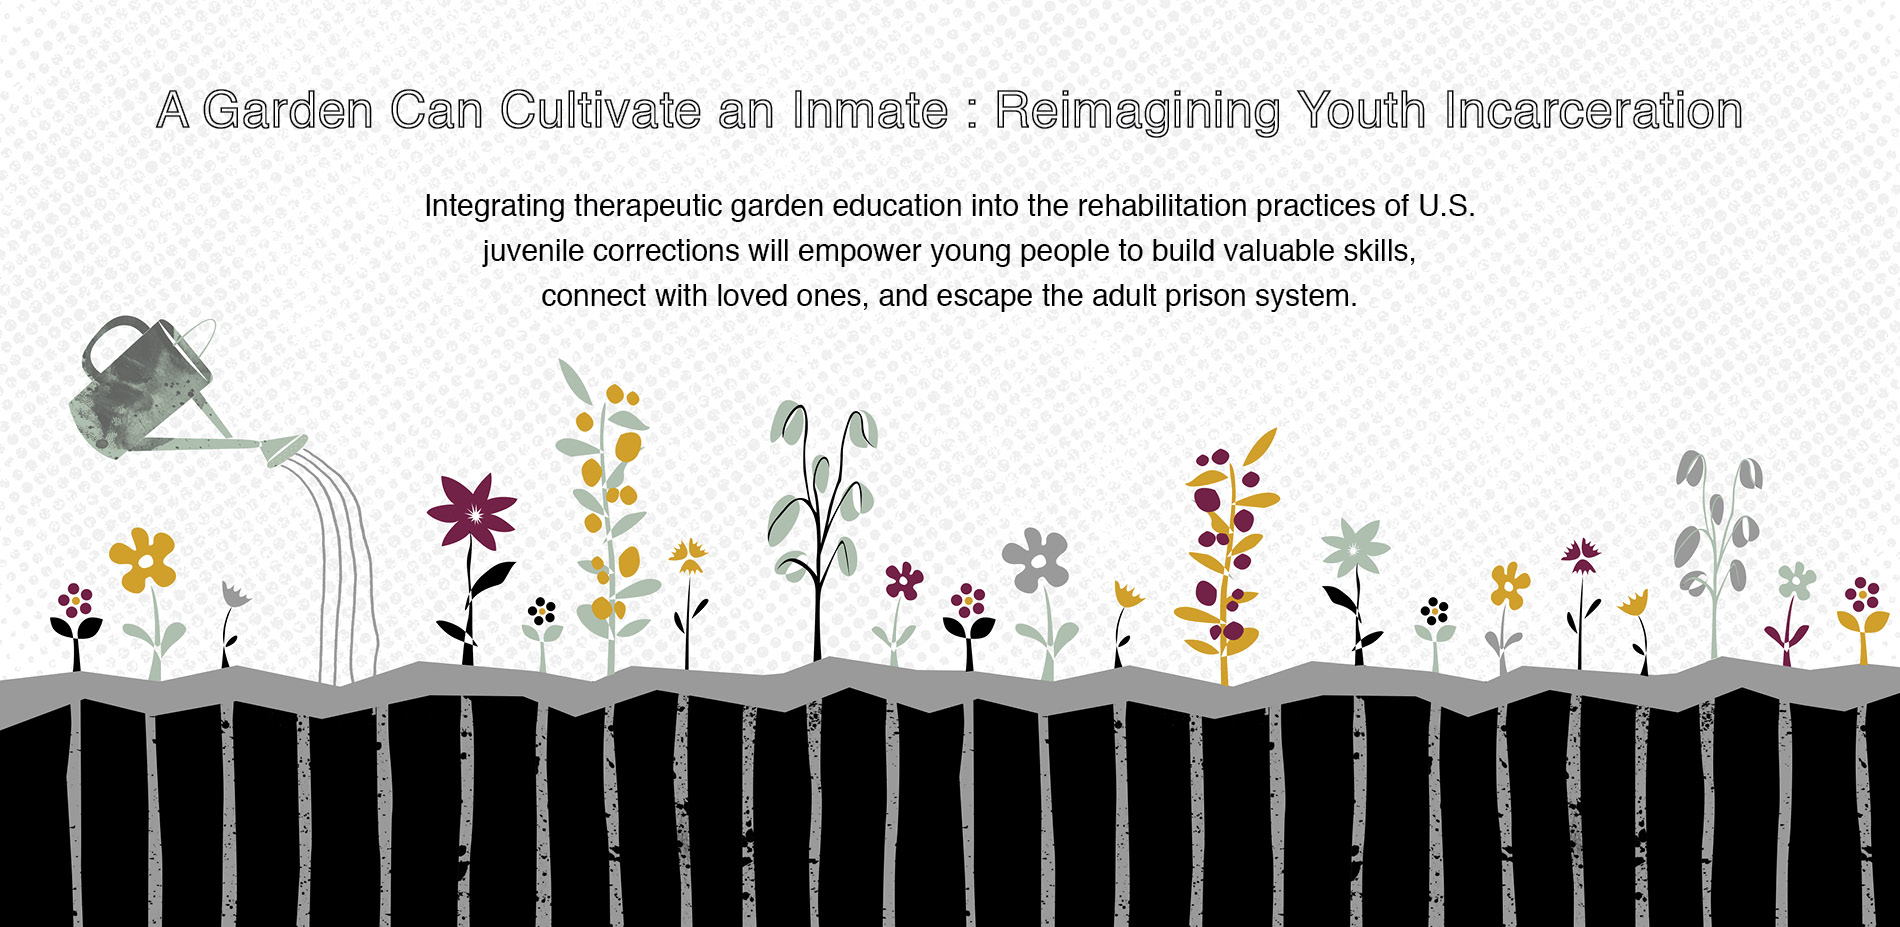 A Garden Can Cultivate an Inmate